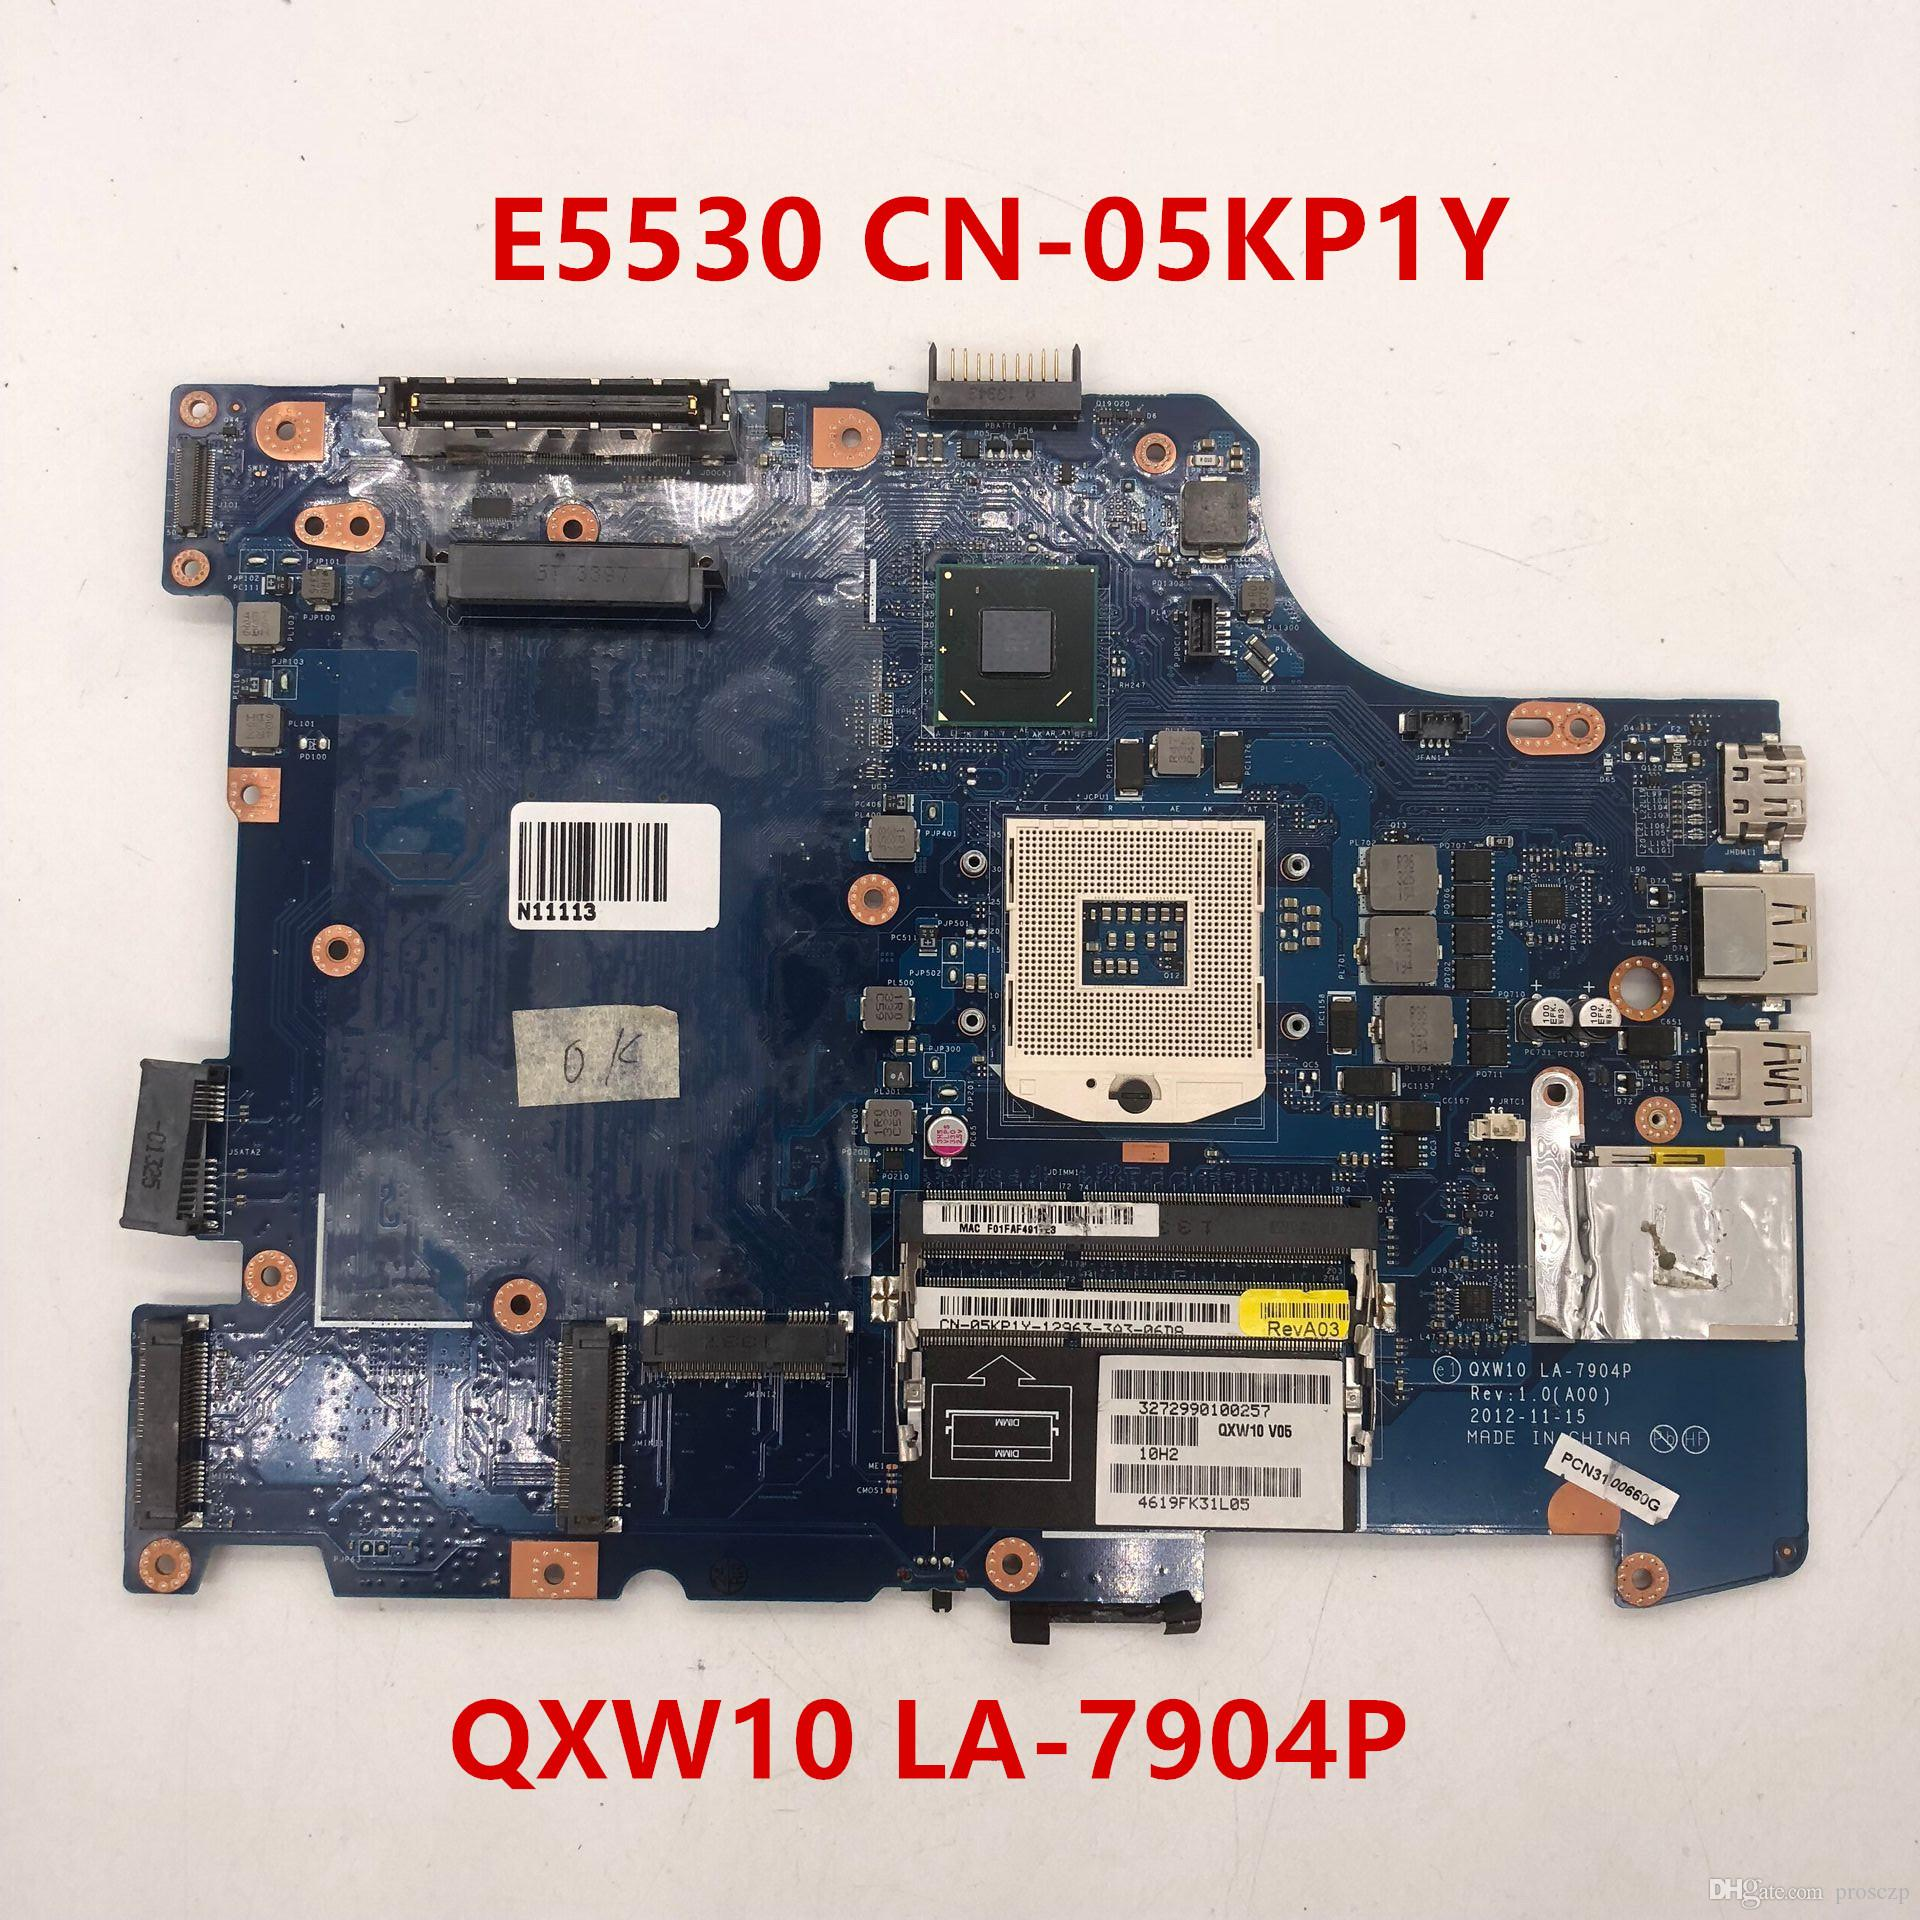 Free shipping for E5530 Laptop Motherboard 5KP1Y LA-7904P 05KP1Y CN-05KP1Y 100%Tested